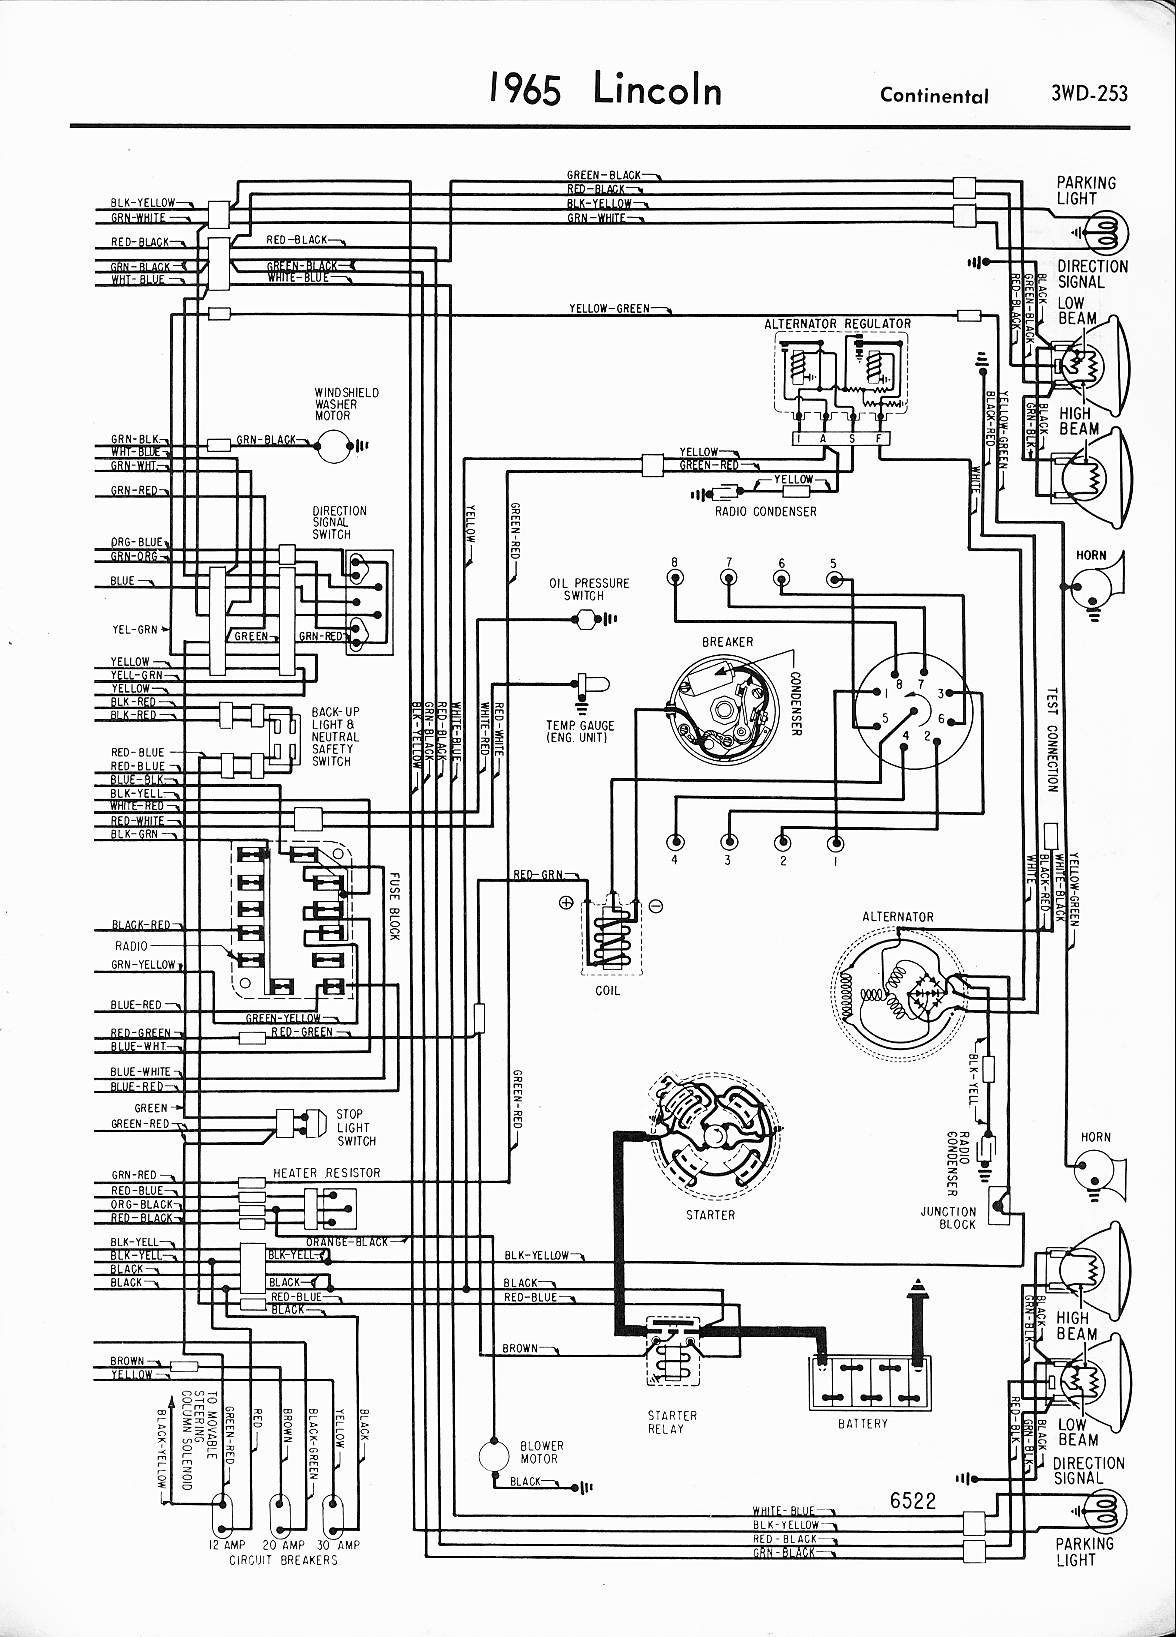 hight resolution of lincoln wiring diagrams 1957 1965 1999 club car wiring diagram 1965 lincoln right half